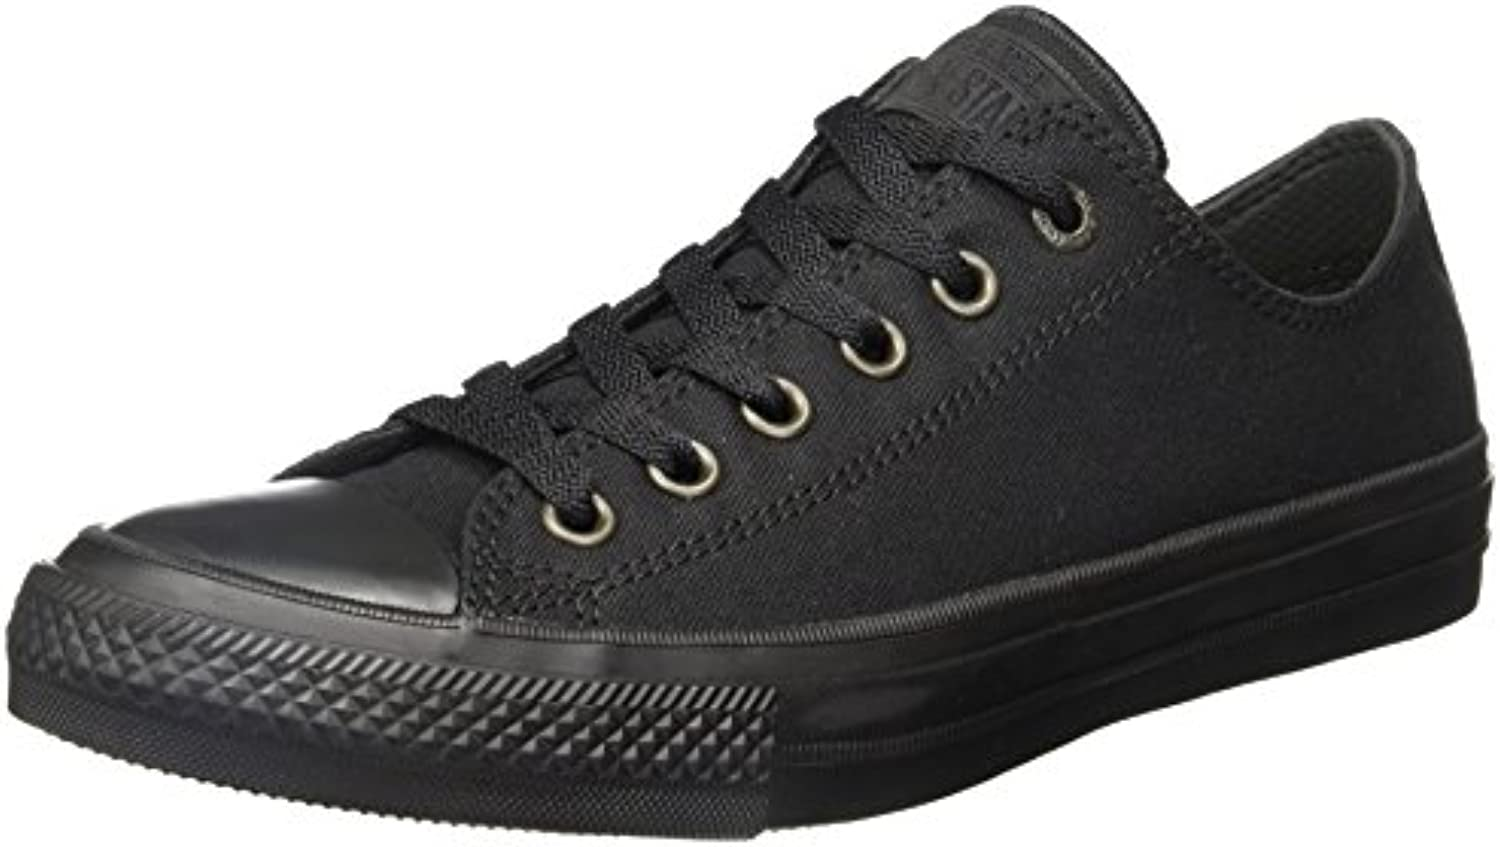 Converse Unisex Erwachsene Chuck Taylor All Star II Low Top